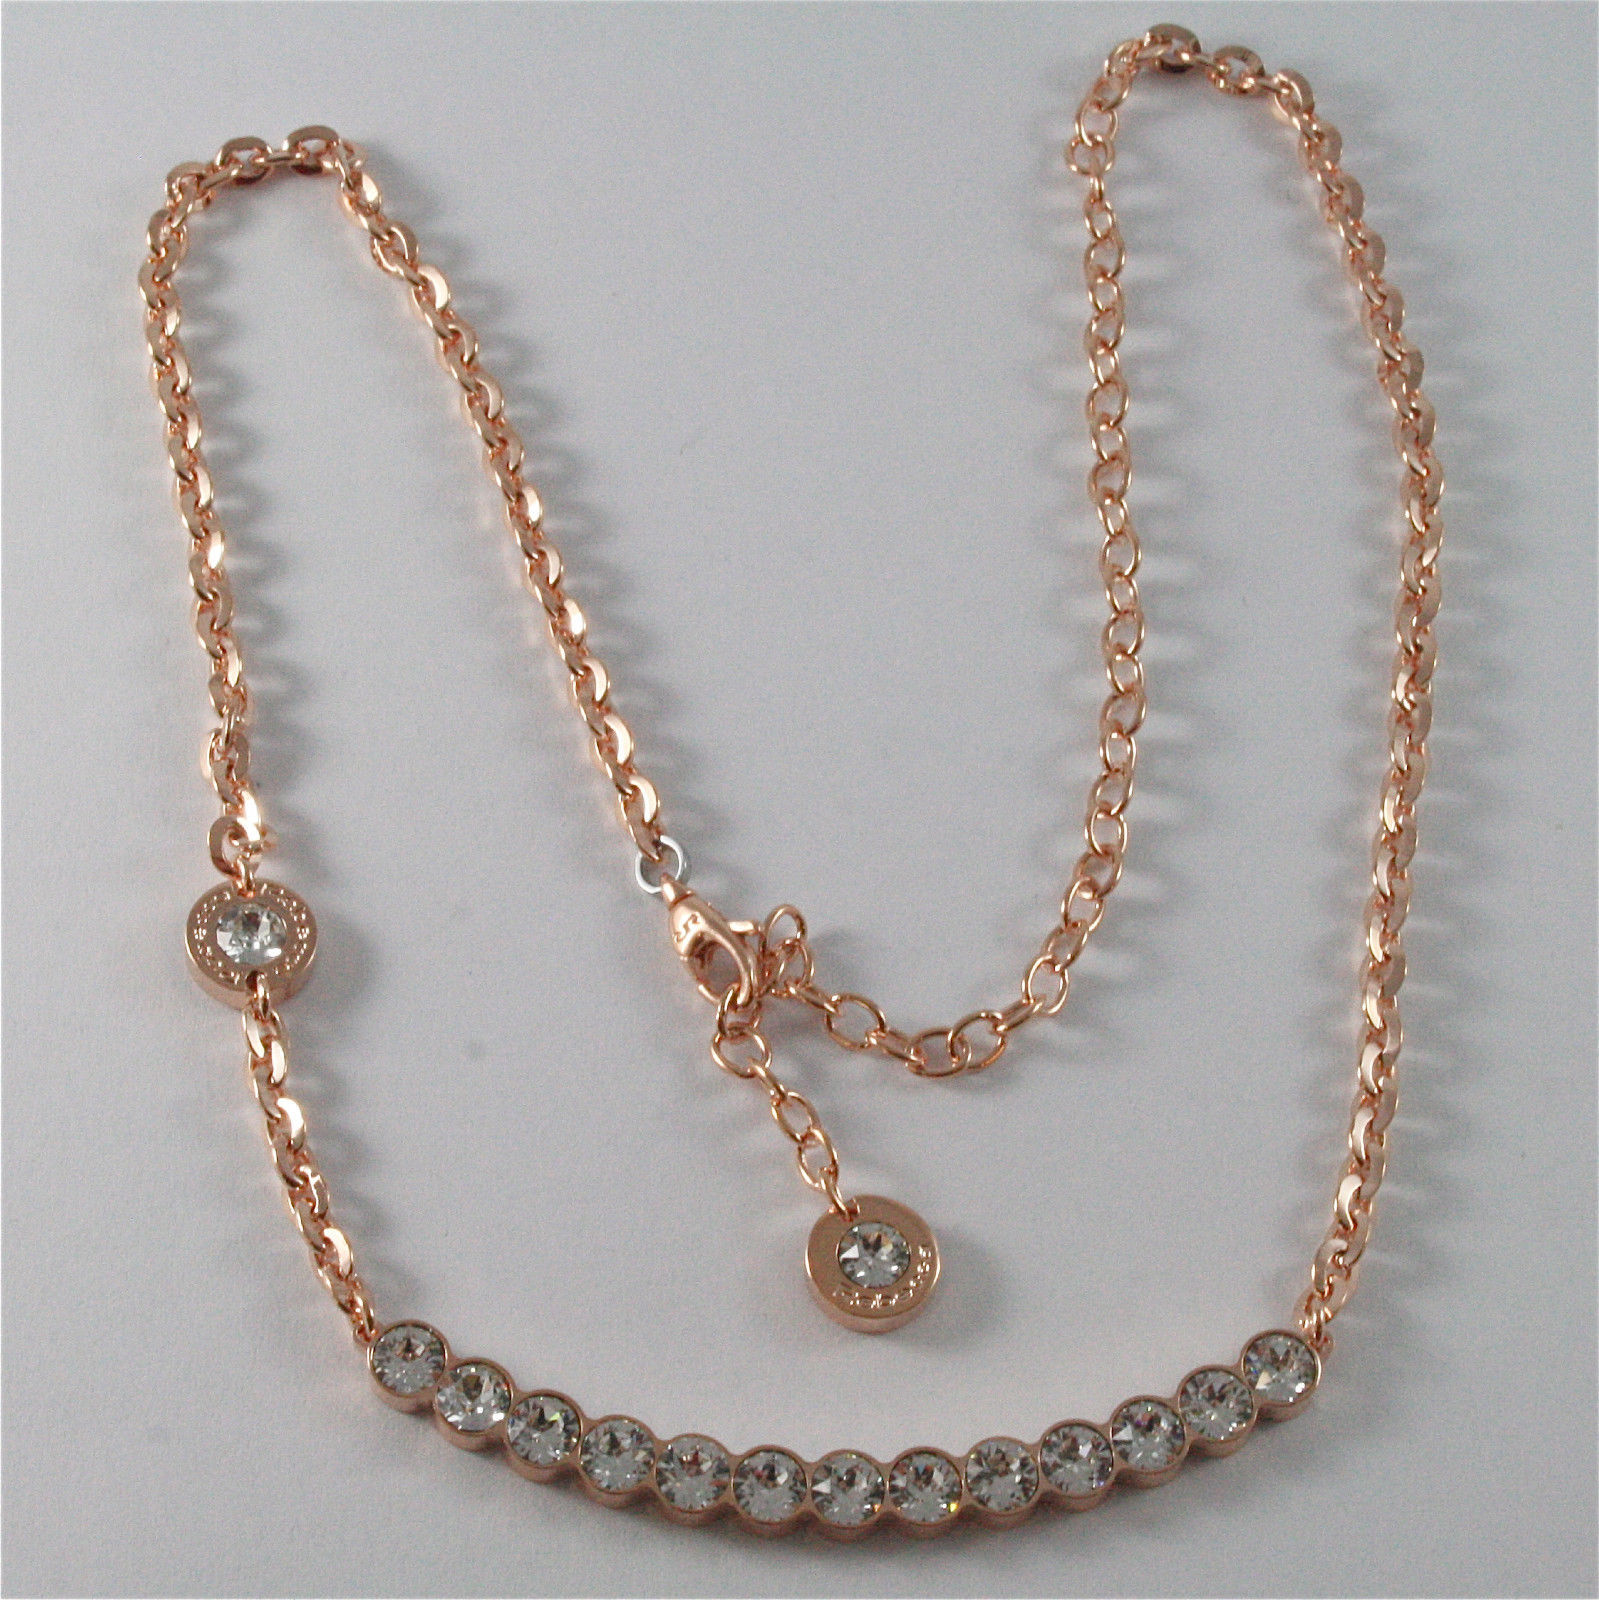 ROSE GOLD PLATED BRONZE REBECCA TENNIS NECKLACE BPBKRB14 MADE IN ITALY 18.90 IN